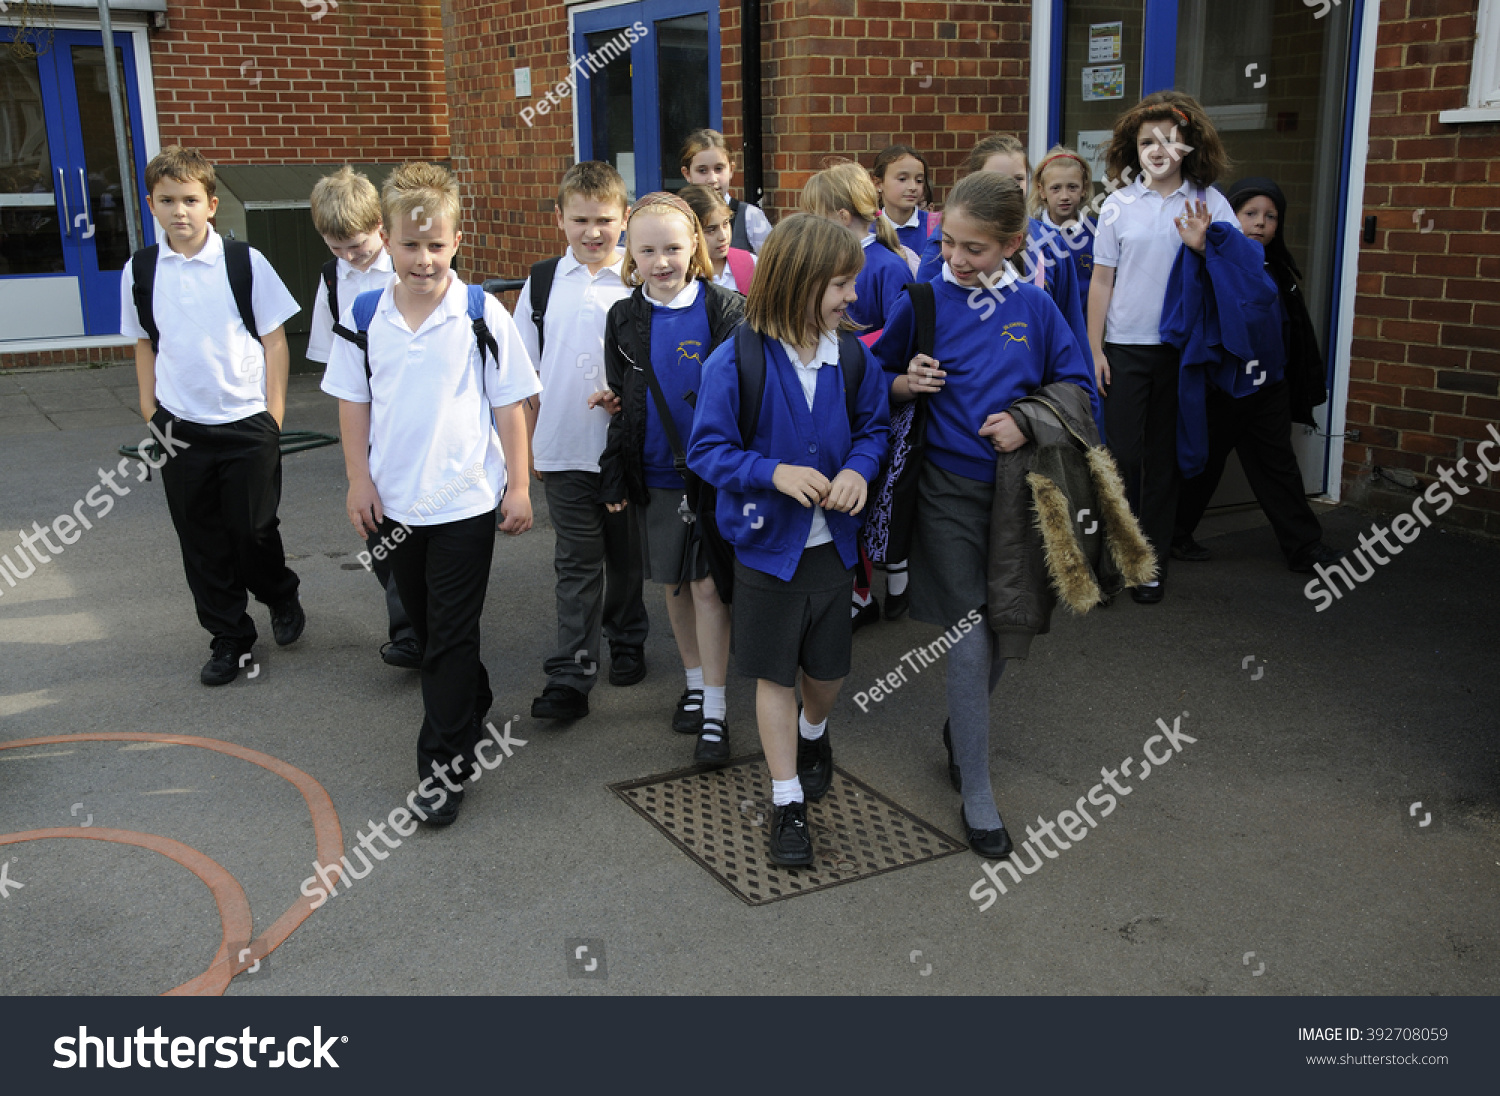 stock-photo-schoolchildren-at-a-silchester-school-hampshire-england-uk-circa-schoolchildren-in-the-392708059.jpg?profile=RESIZE_400x